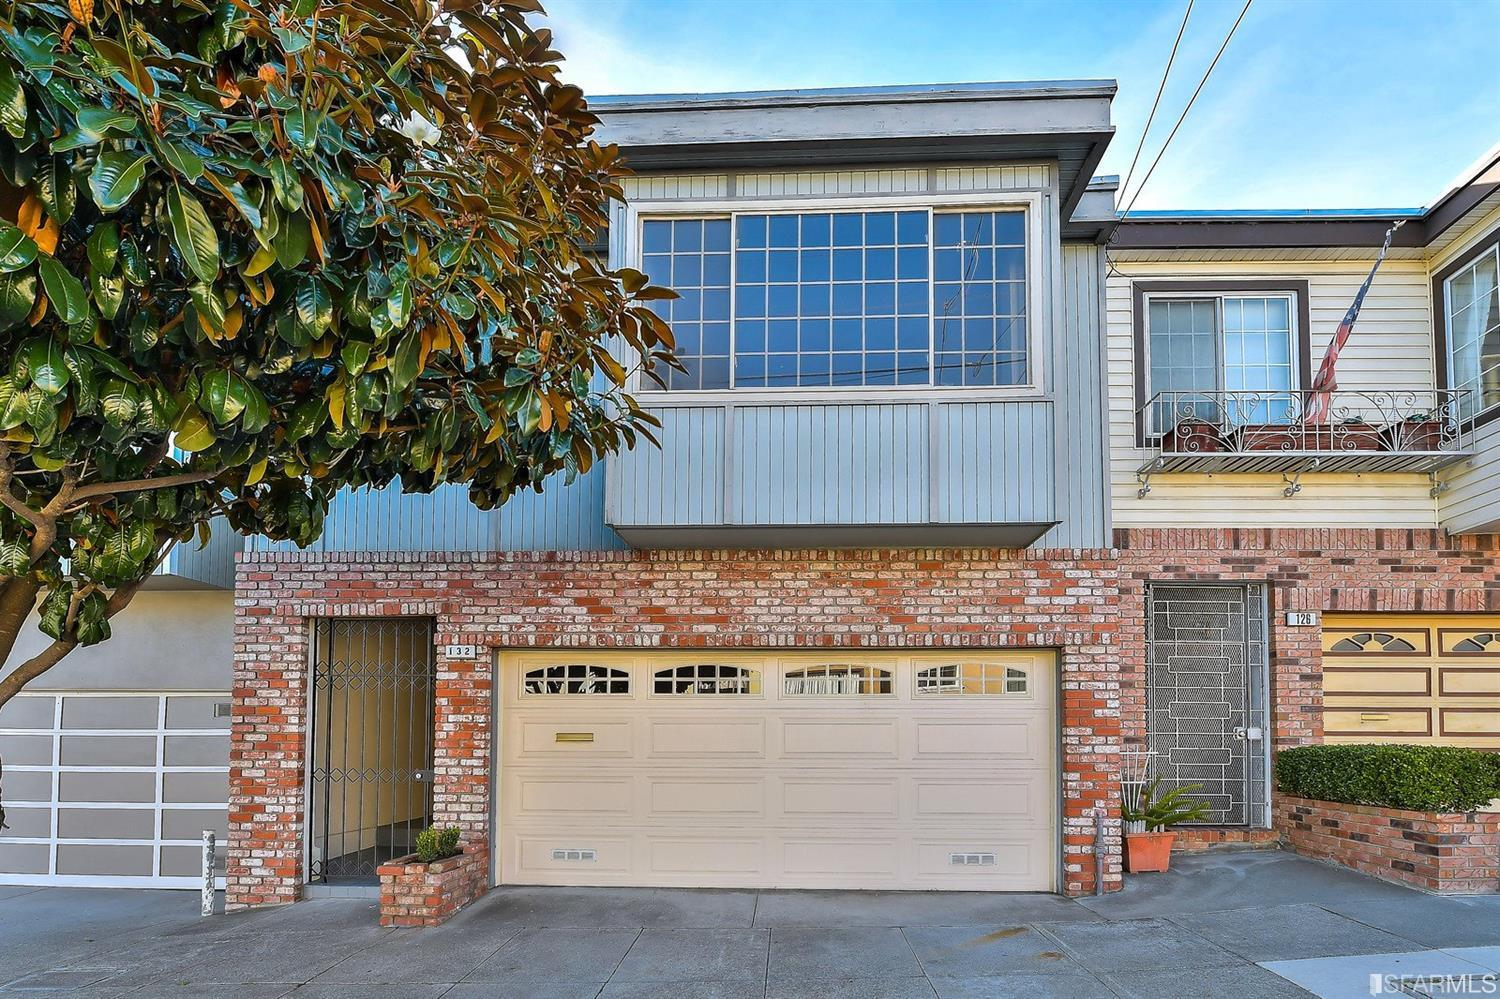 132 Colby Street, San Francisco, CA 94134 - MLS 464668 - Coldwell Banker